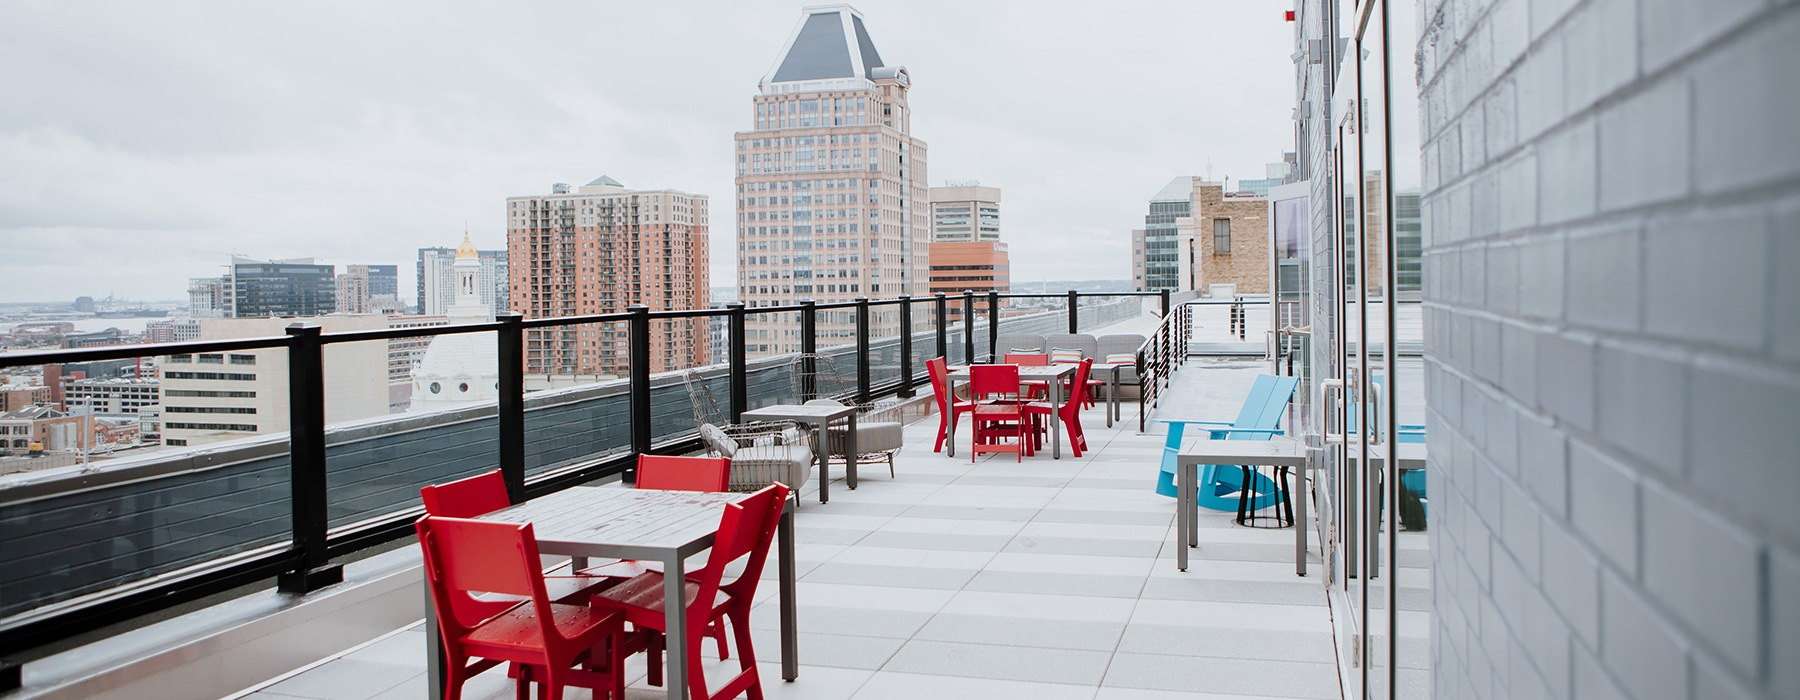 Large rooftop terrace with a nice view of the city